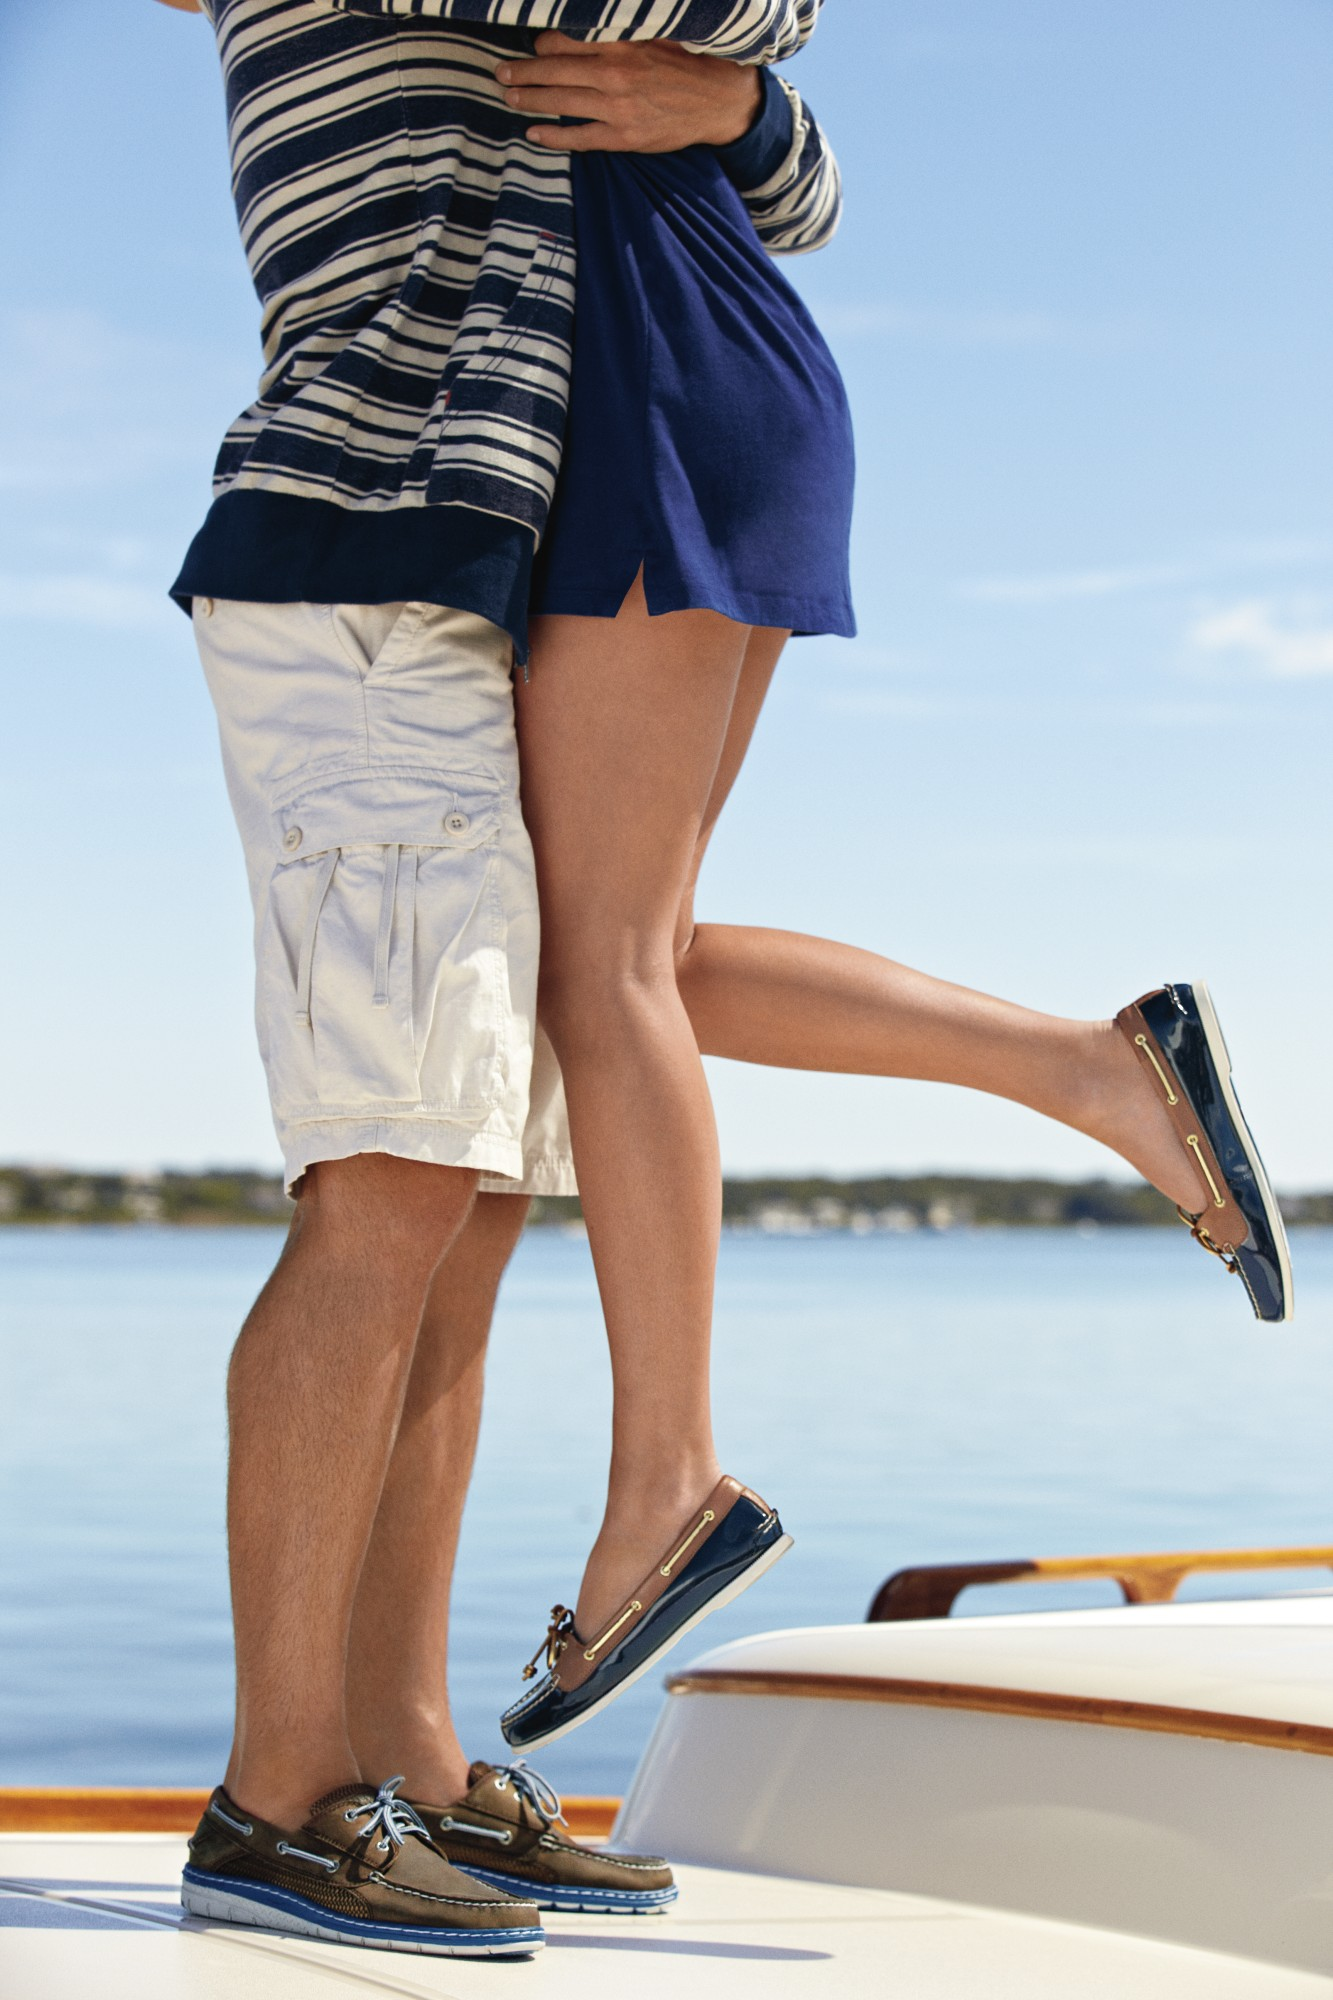 sperry's boat shoes, Pontoon Shoes, Best shoes to wear while Pontooning, Boat Shoes, women's boating shoes, fashion